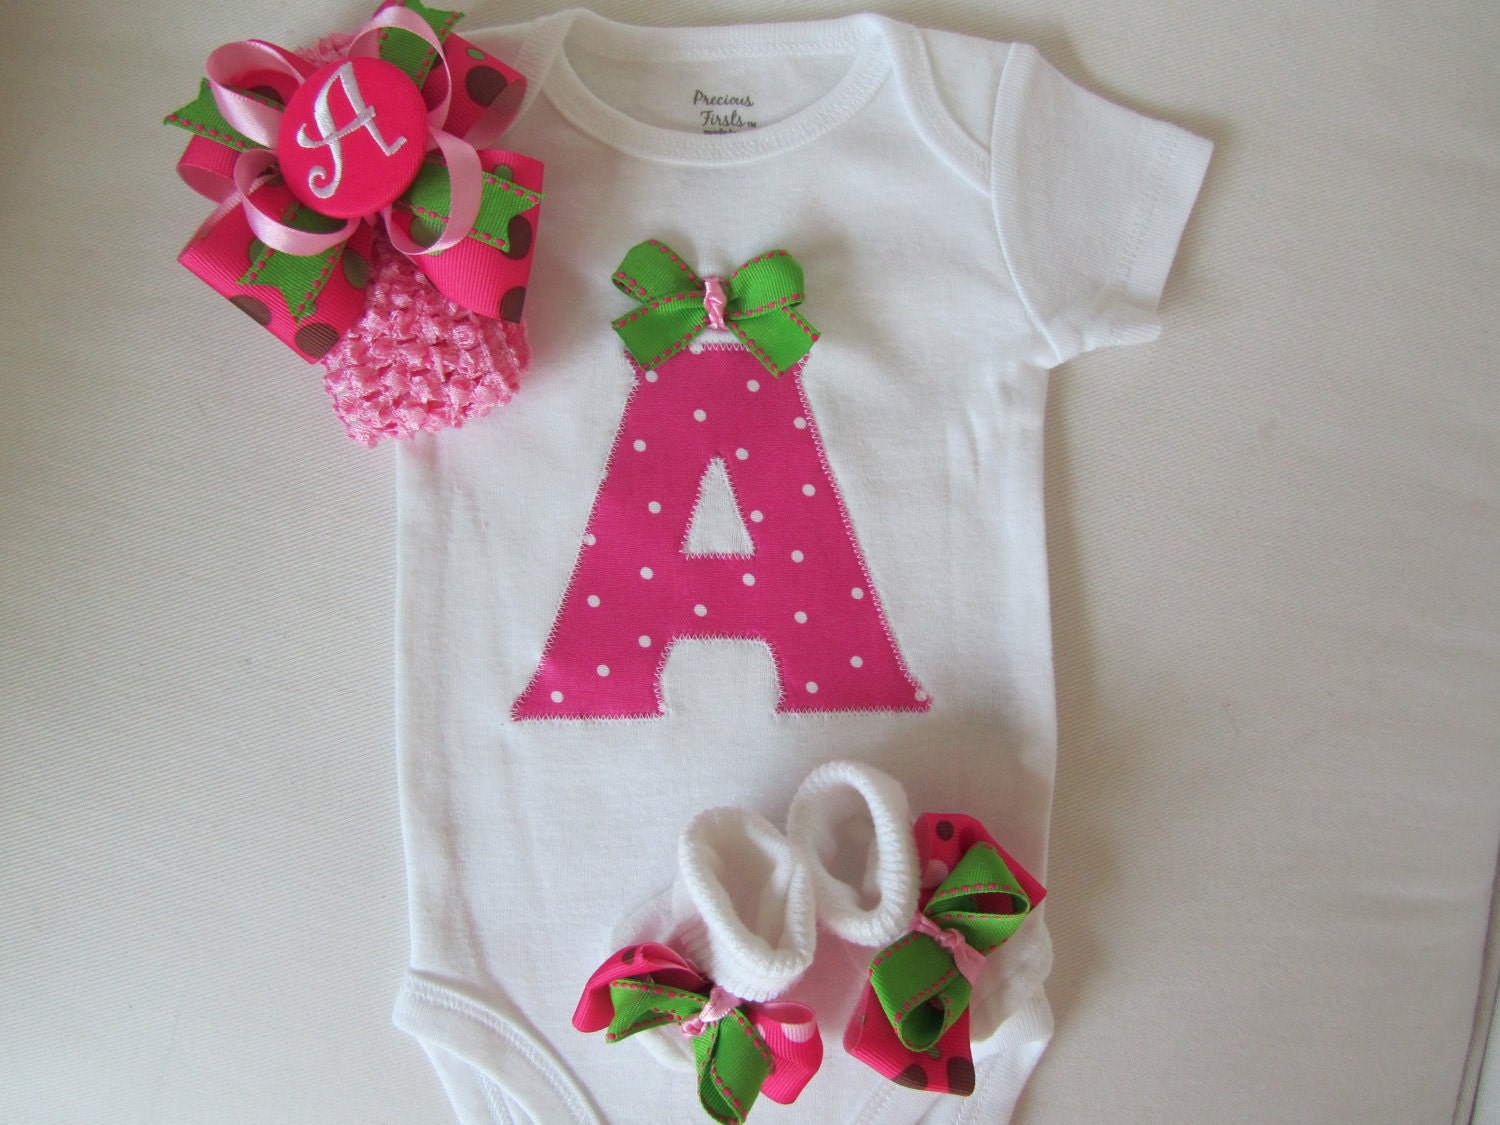 Baby GIrl s Monogrammed Clothing Newborn going home set